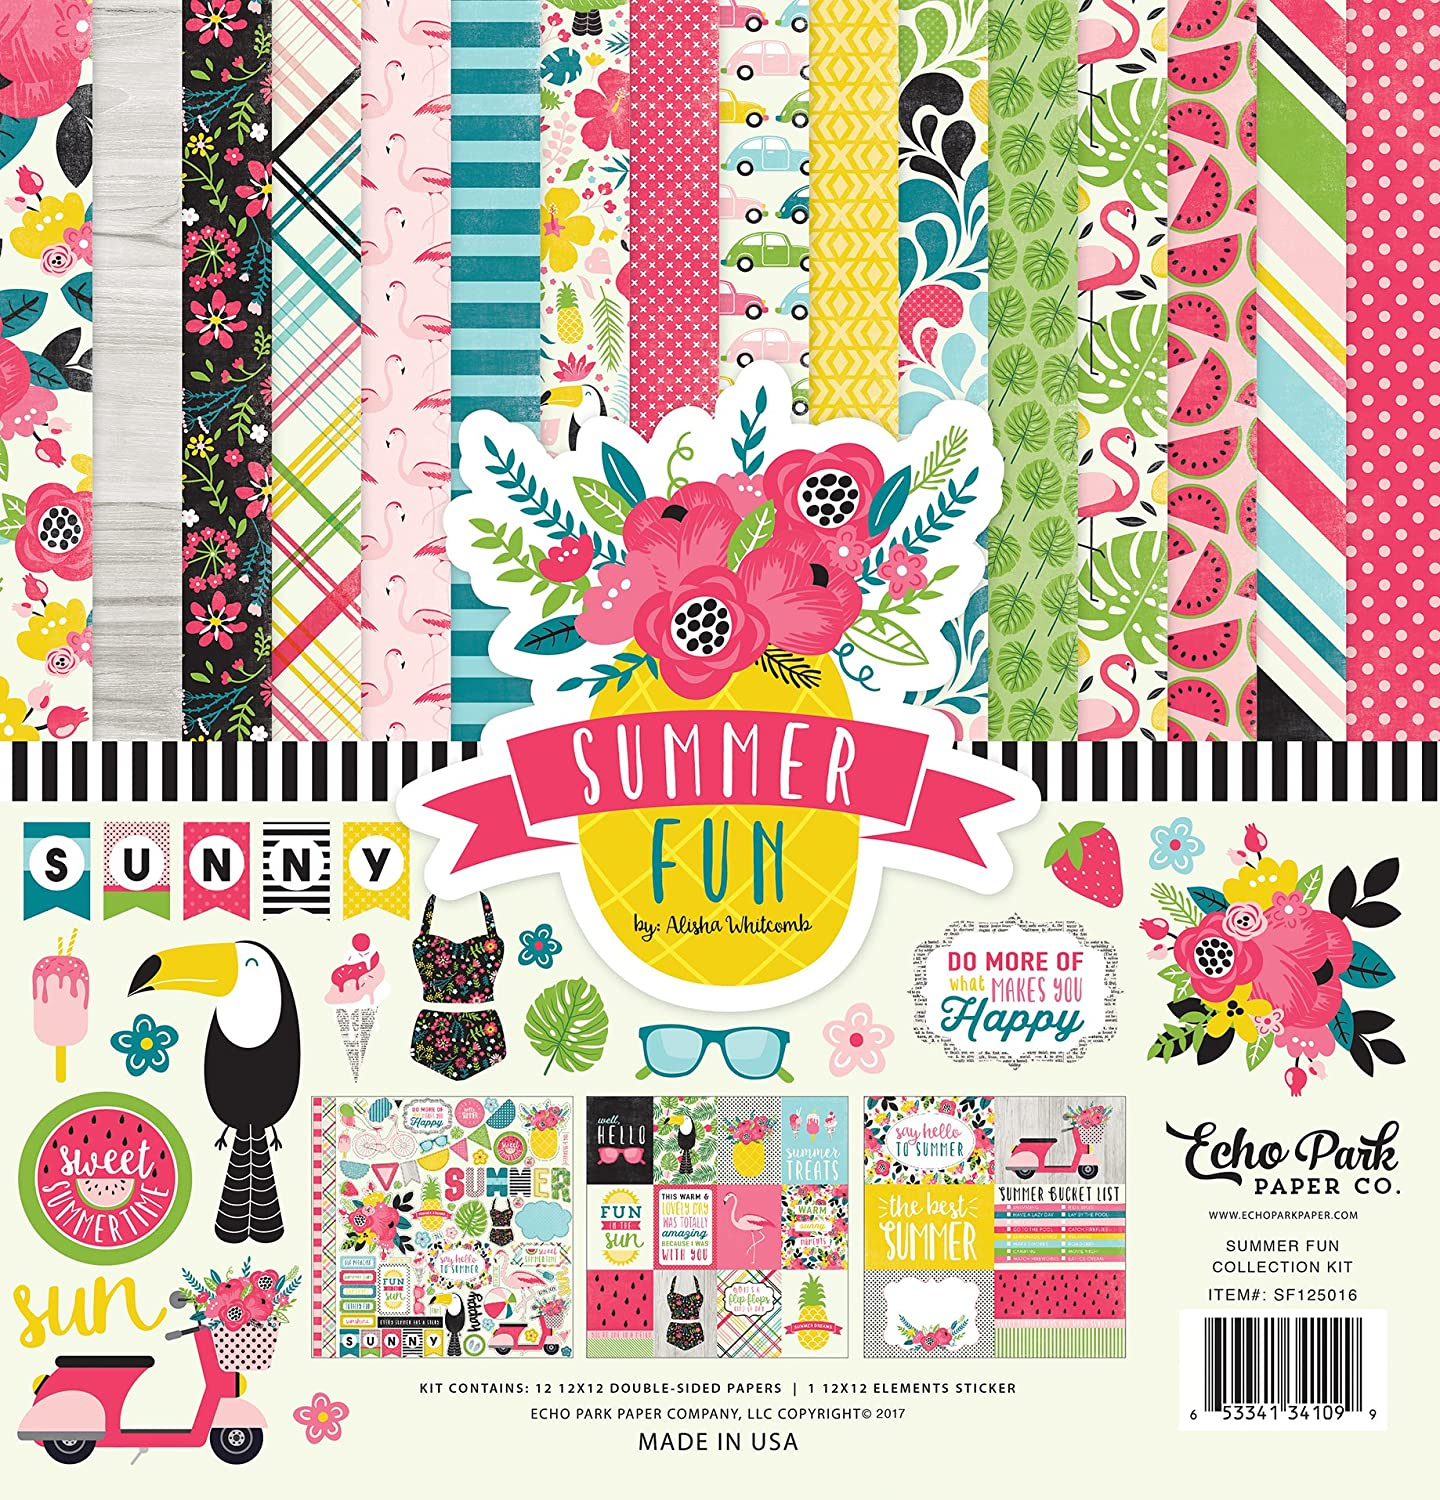 Echo Park Paper Company Summer DreamsCollection Scrapbooking Kit